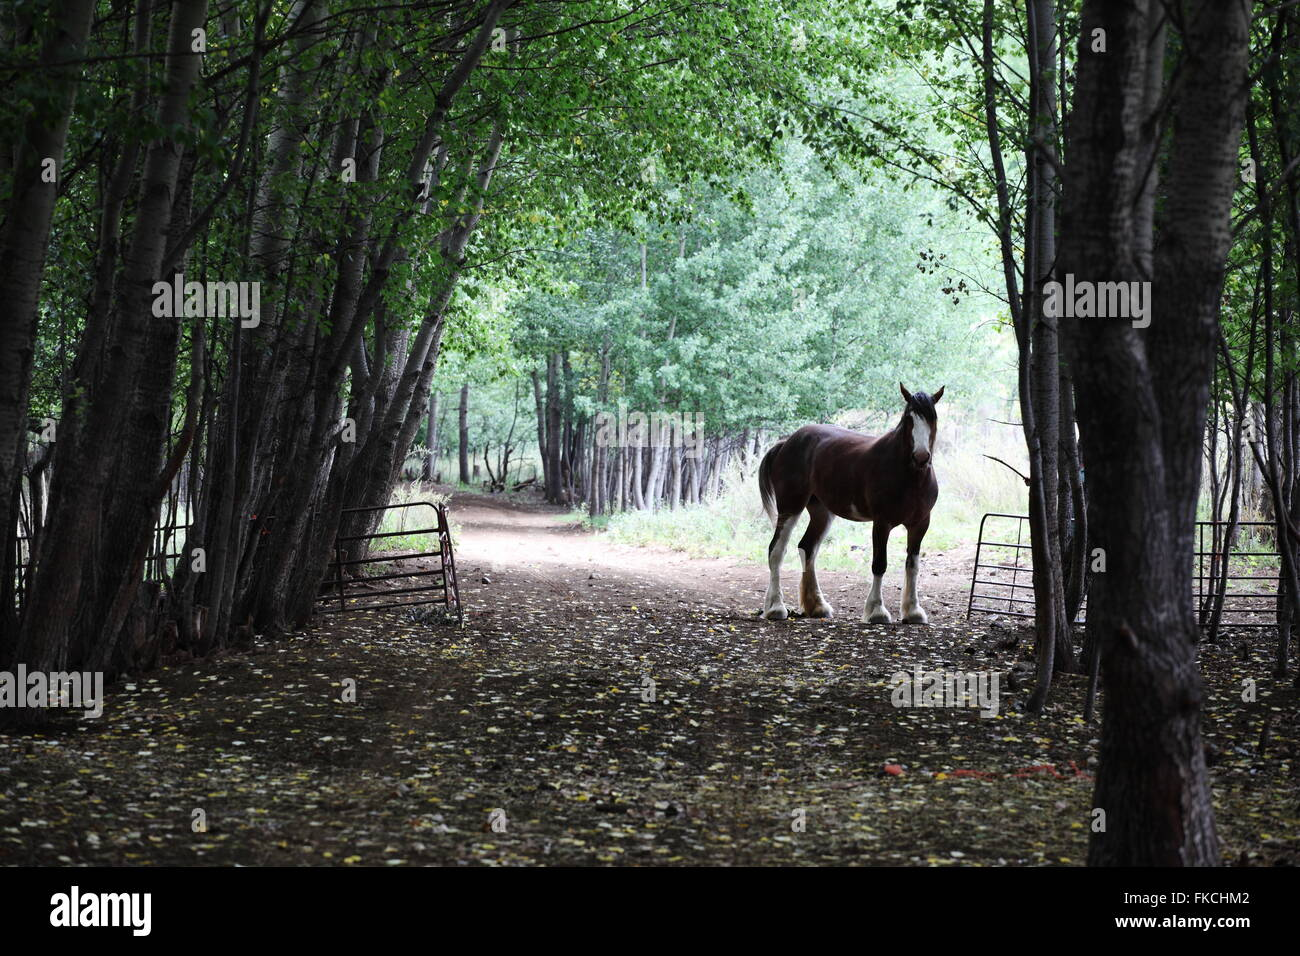 Draft horse in serene poplar forest and pathway setting - Stock Image